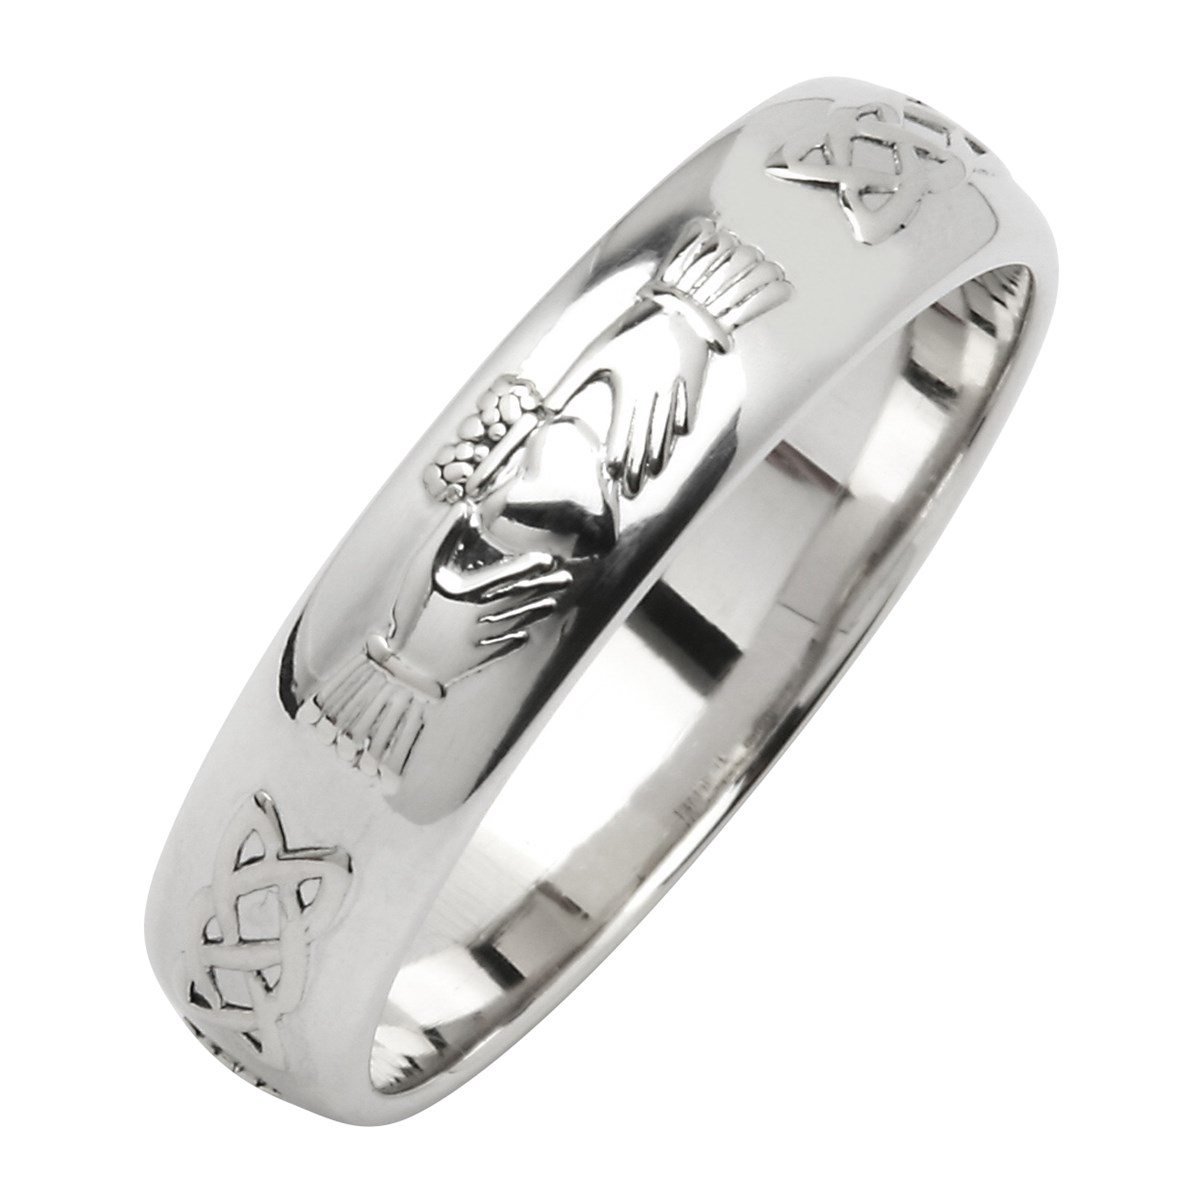 White Gold Wedding Band.Claddagh Celtic Knot White Gold Wedding Band